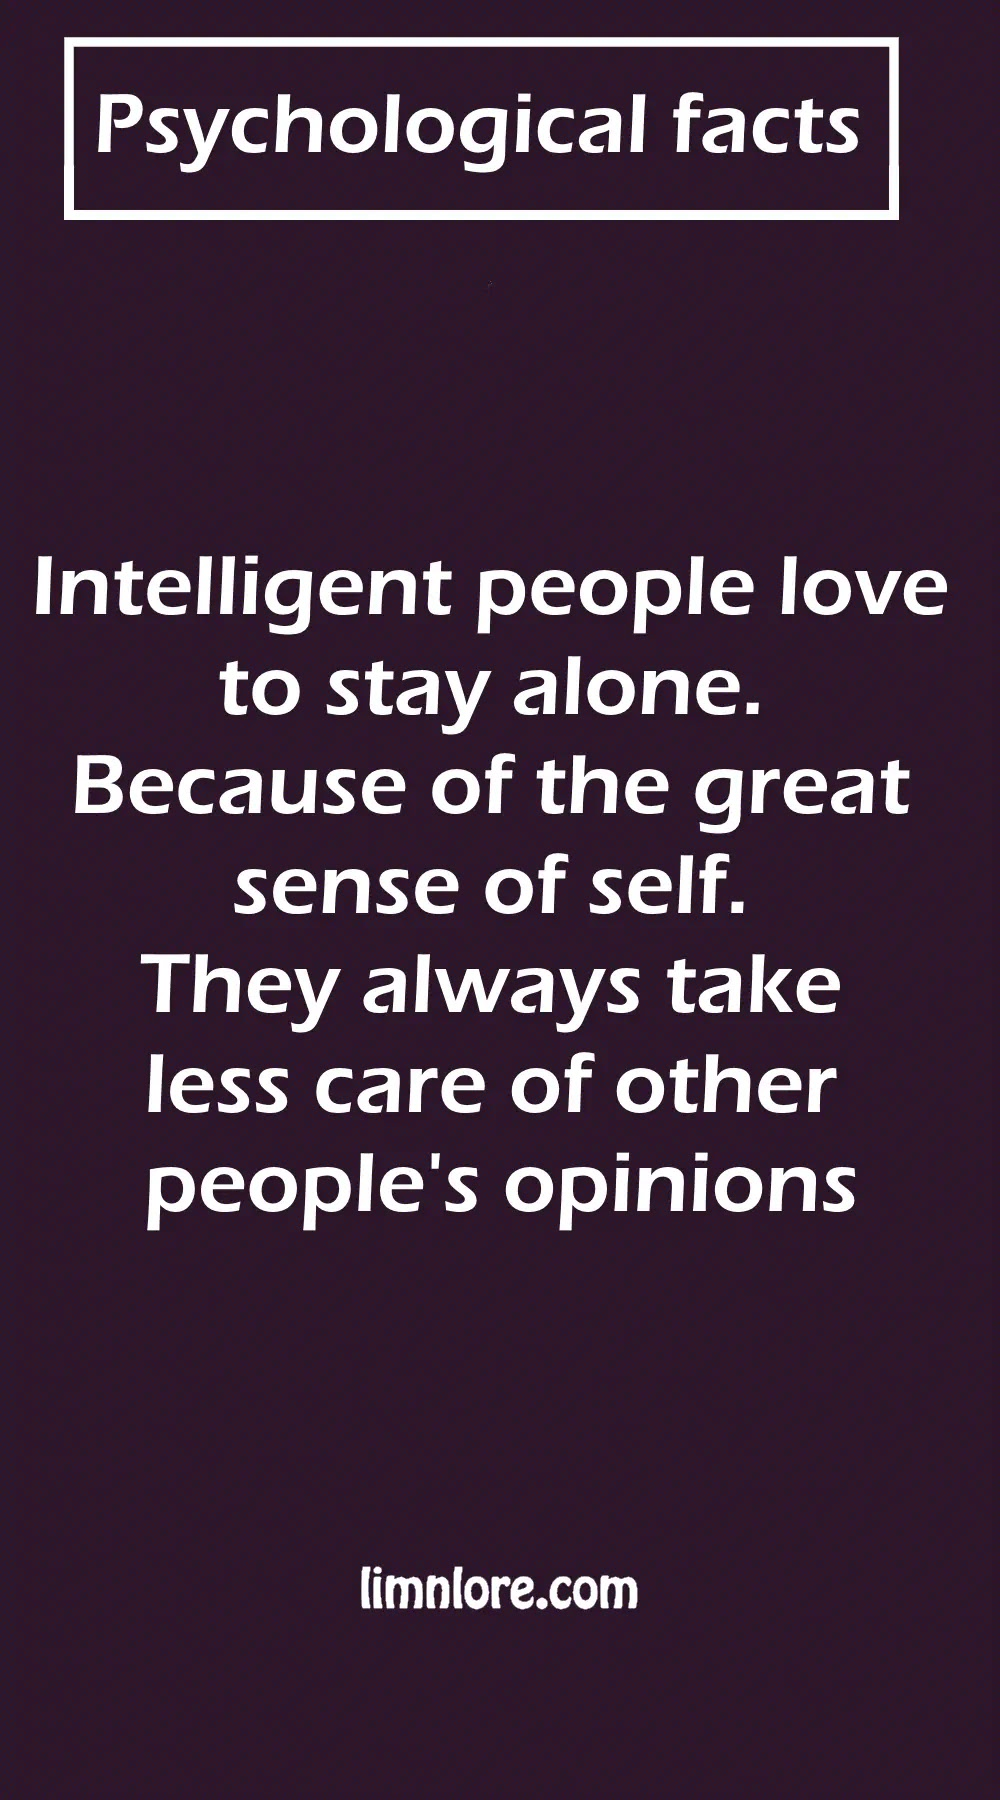 Intelligent people love to stay alone